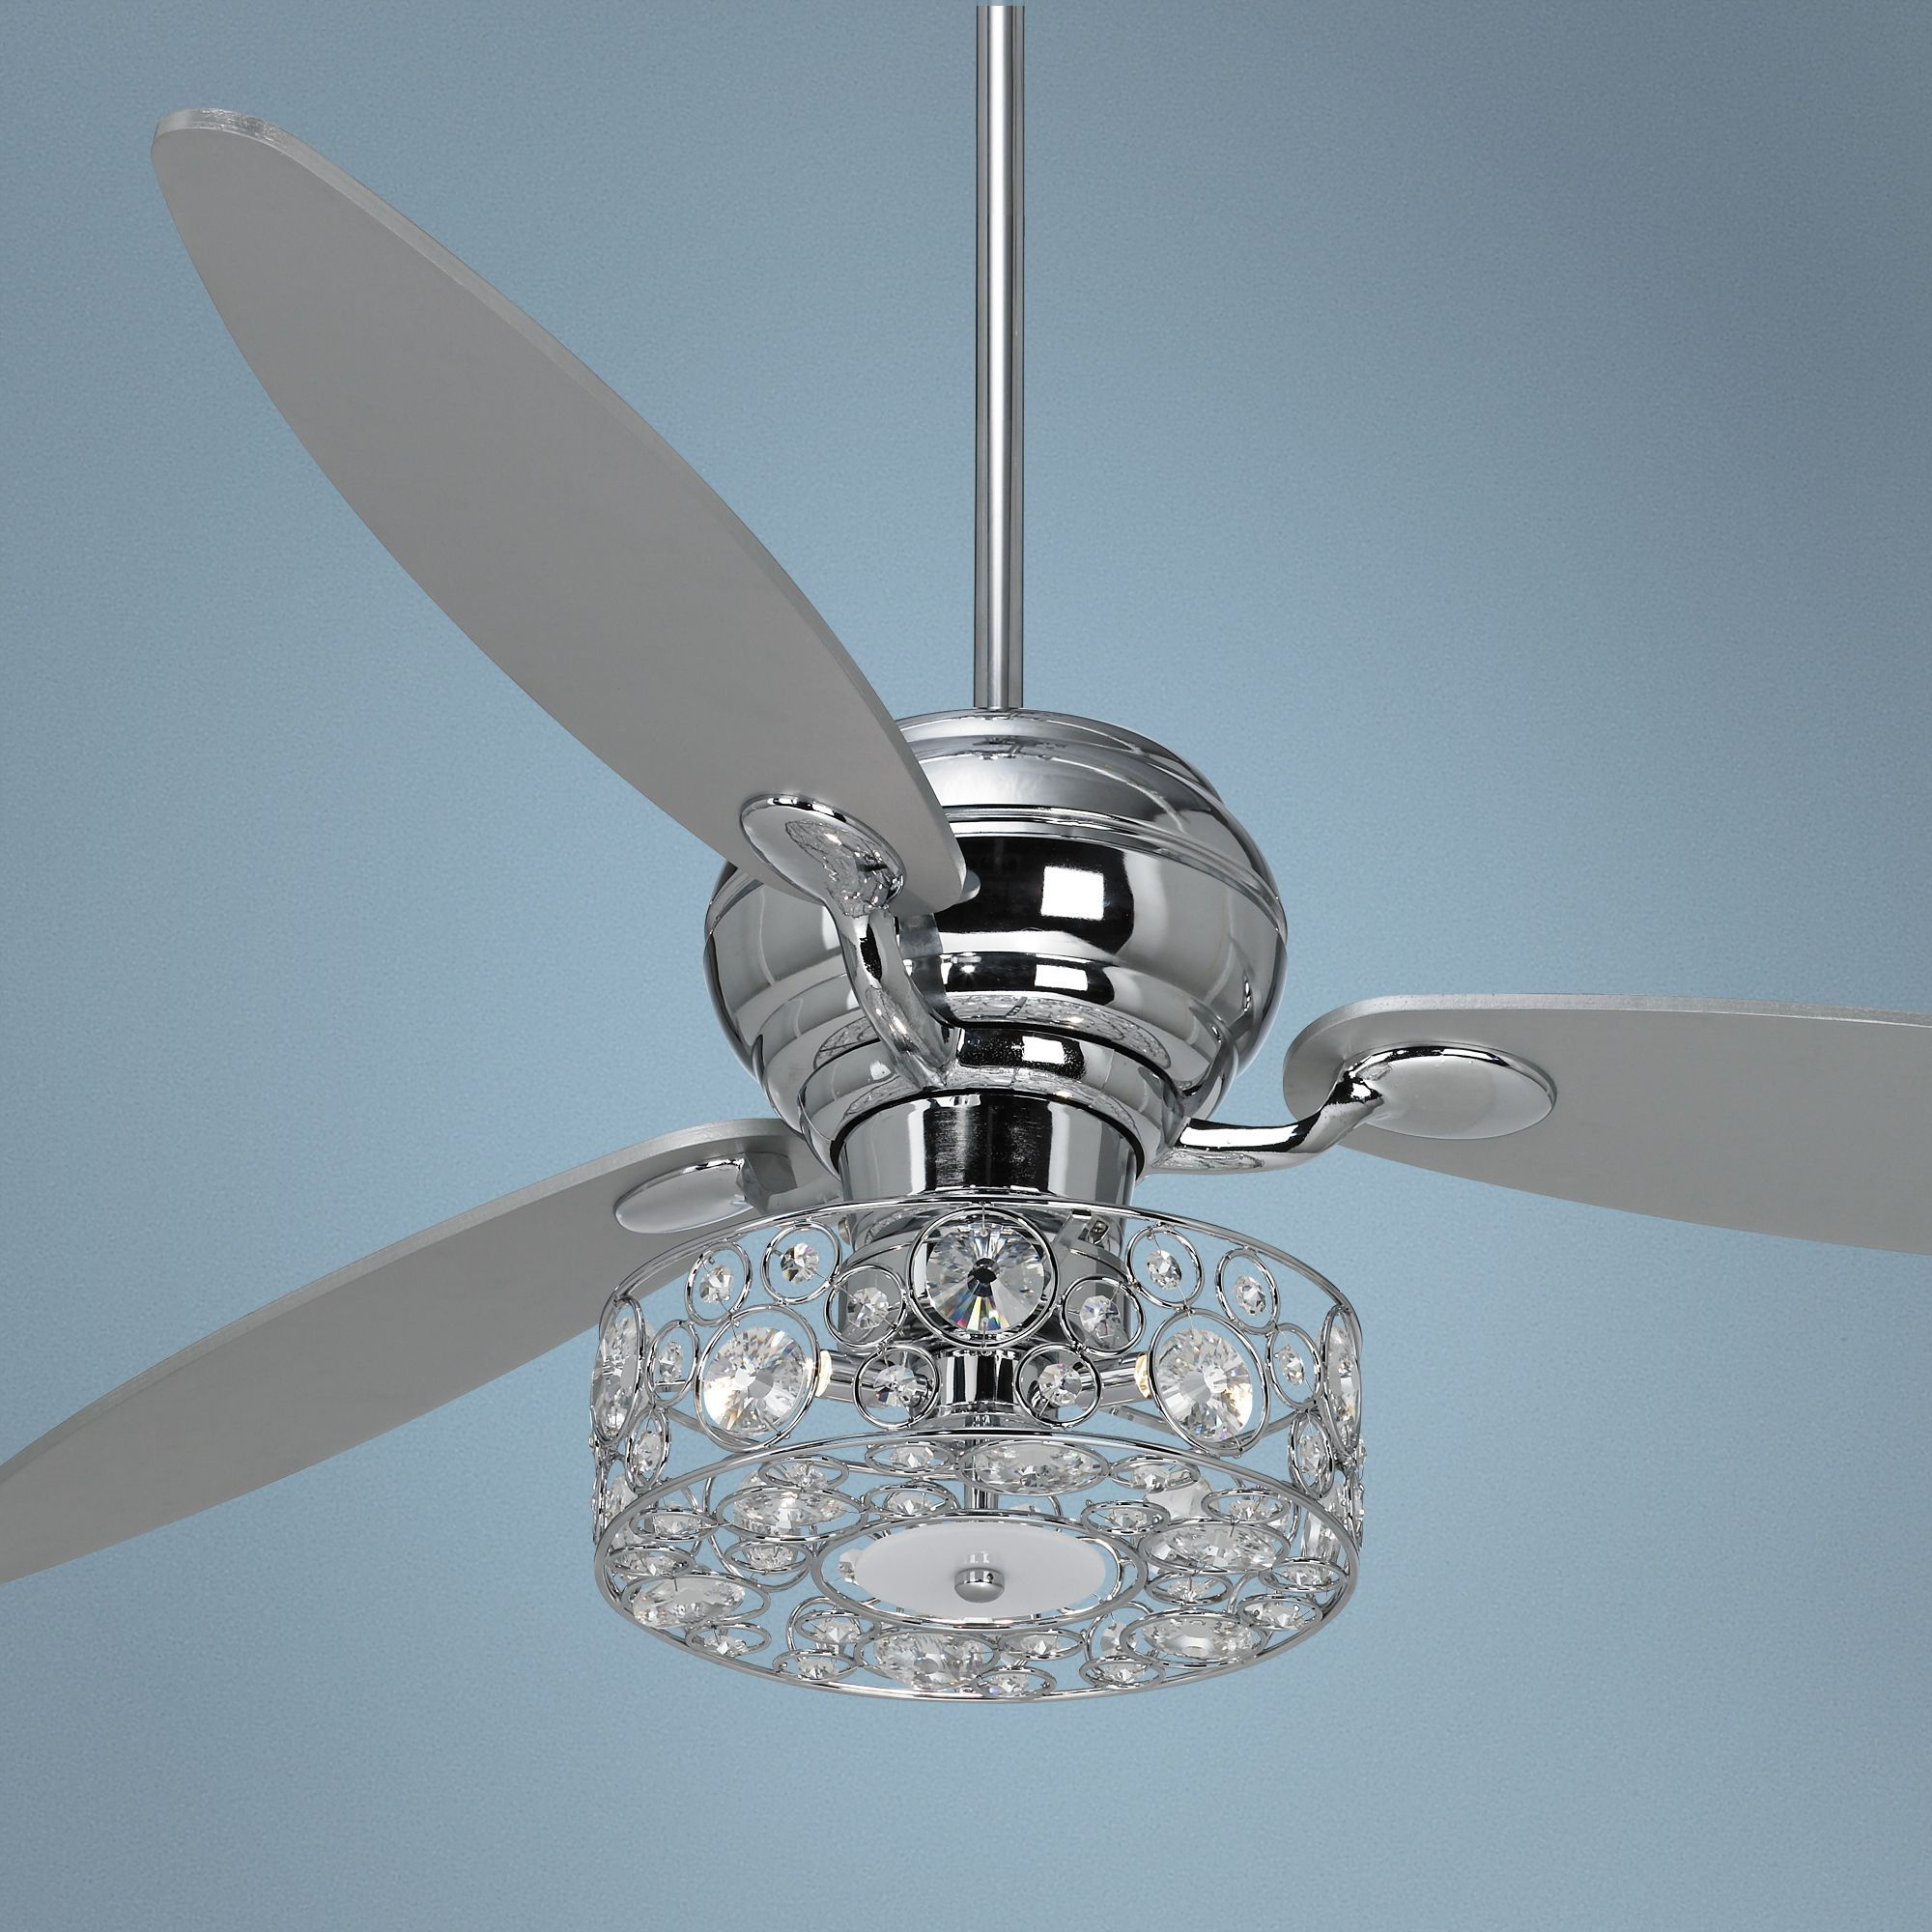 Chrome Ceiling Fans Without Lights Chrome Ceiling Fan Lights Review Home Decor